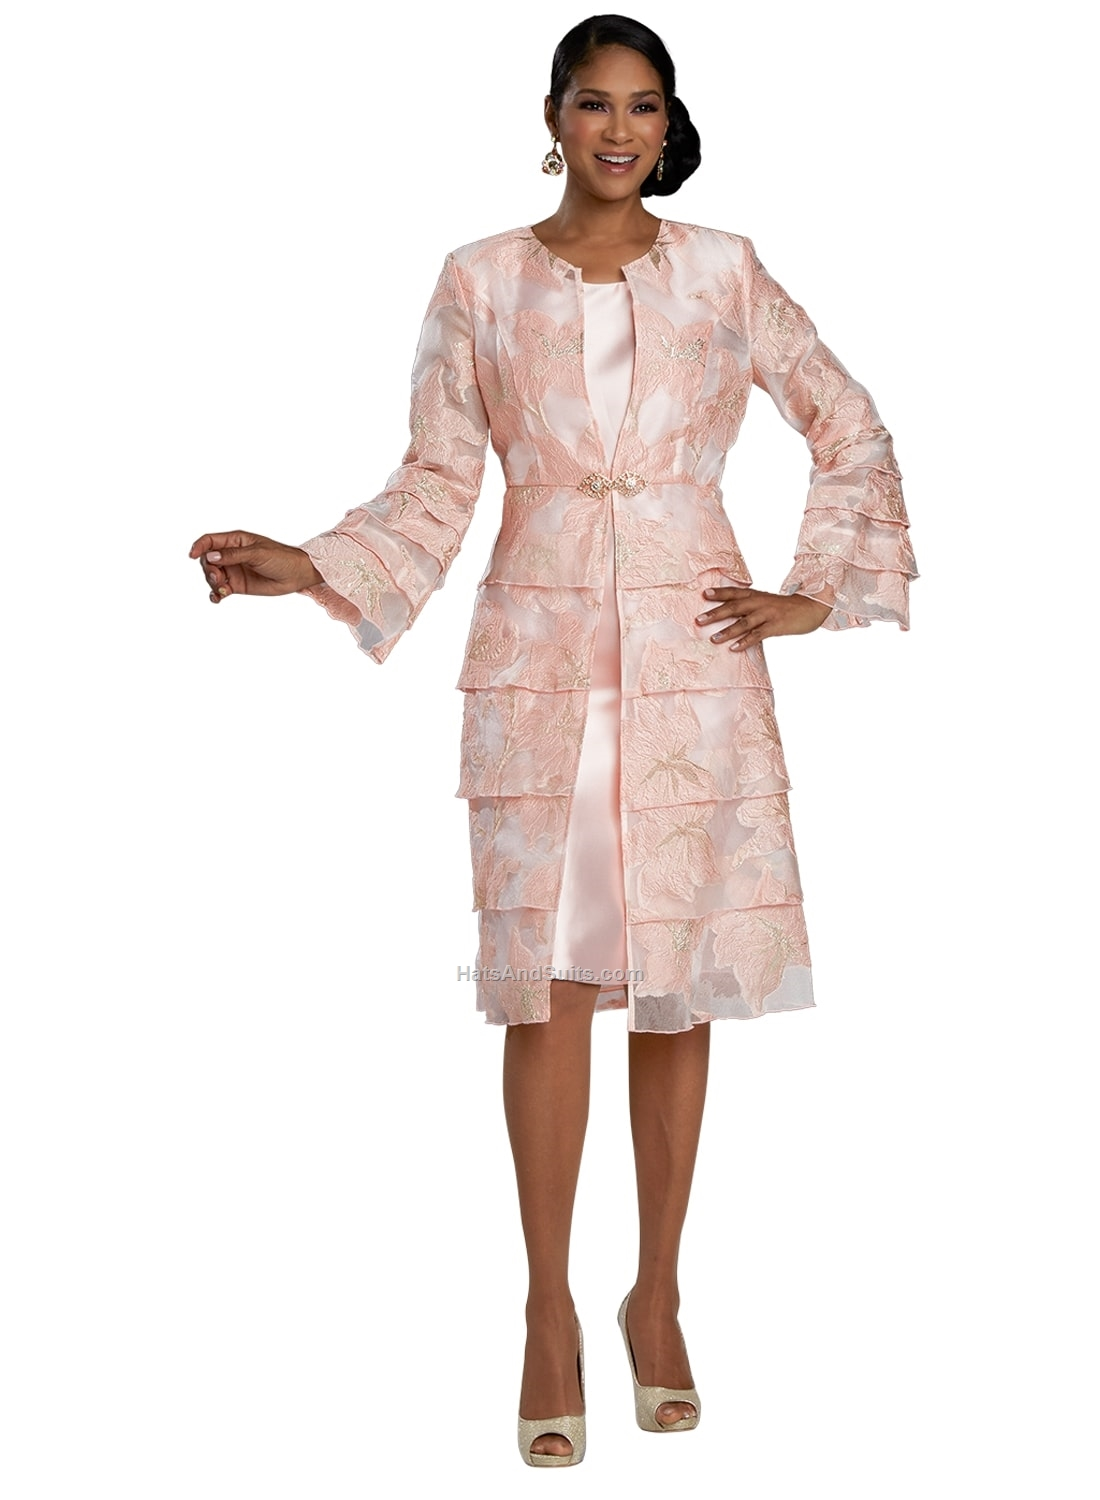 11920 Donna Vinci 2 Pc. Dress & Jacket Set. SP21